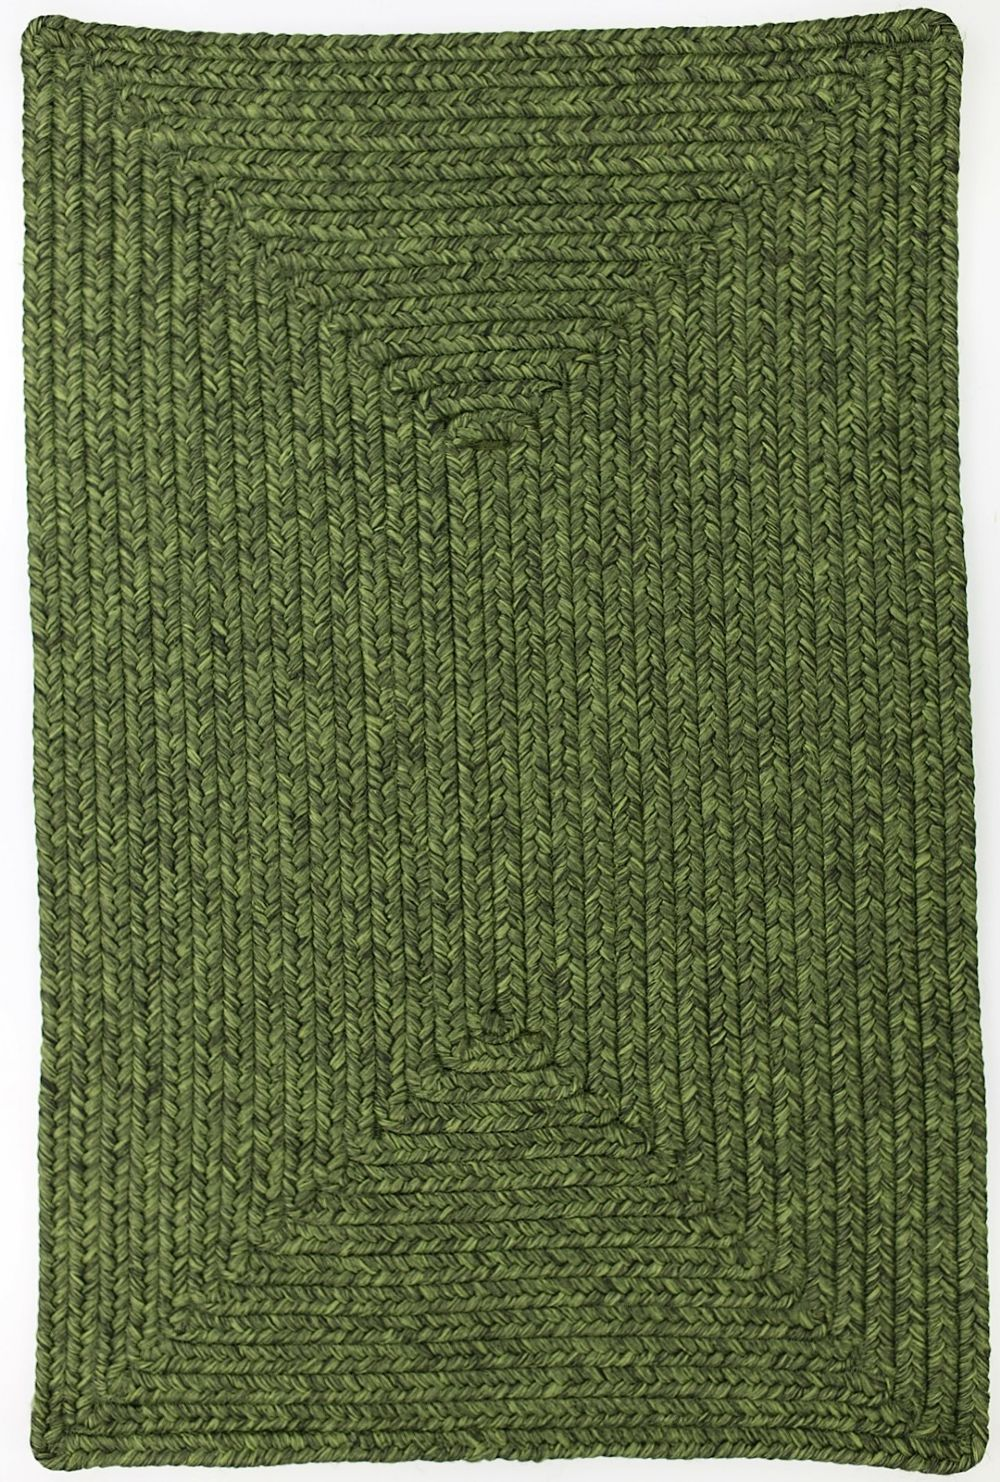 homespice decor pine braided area rug collection